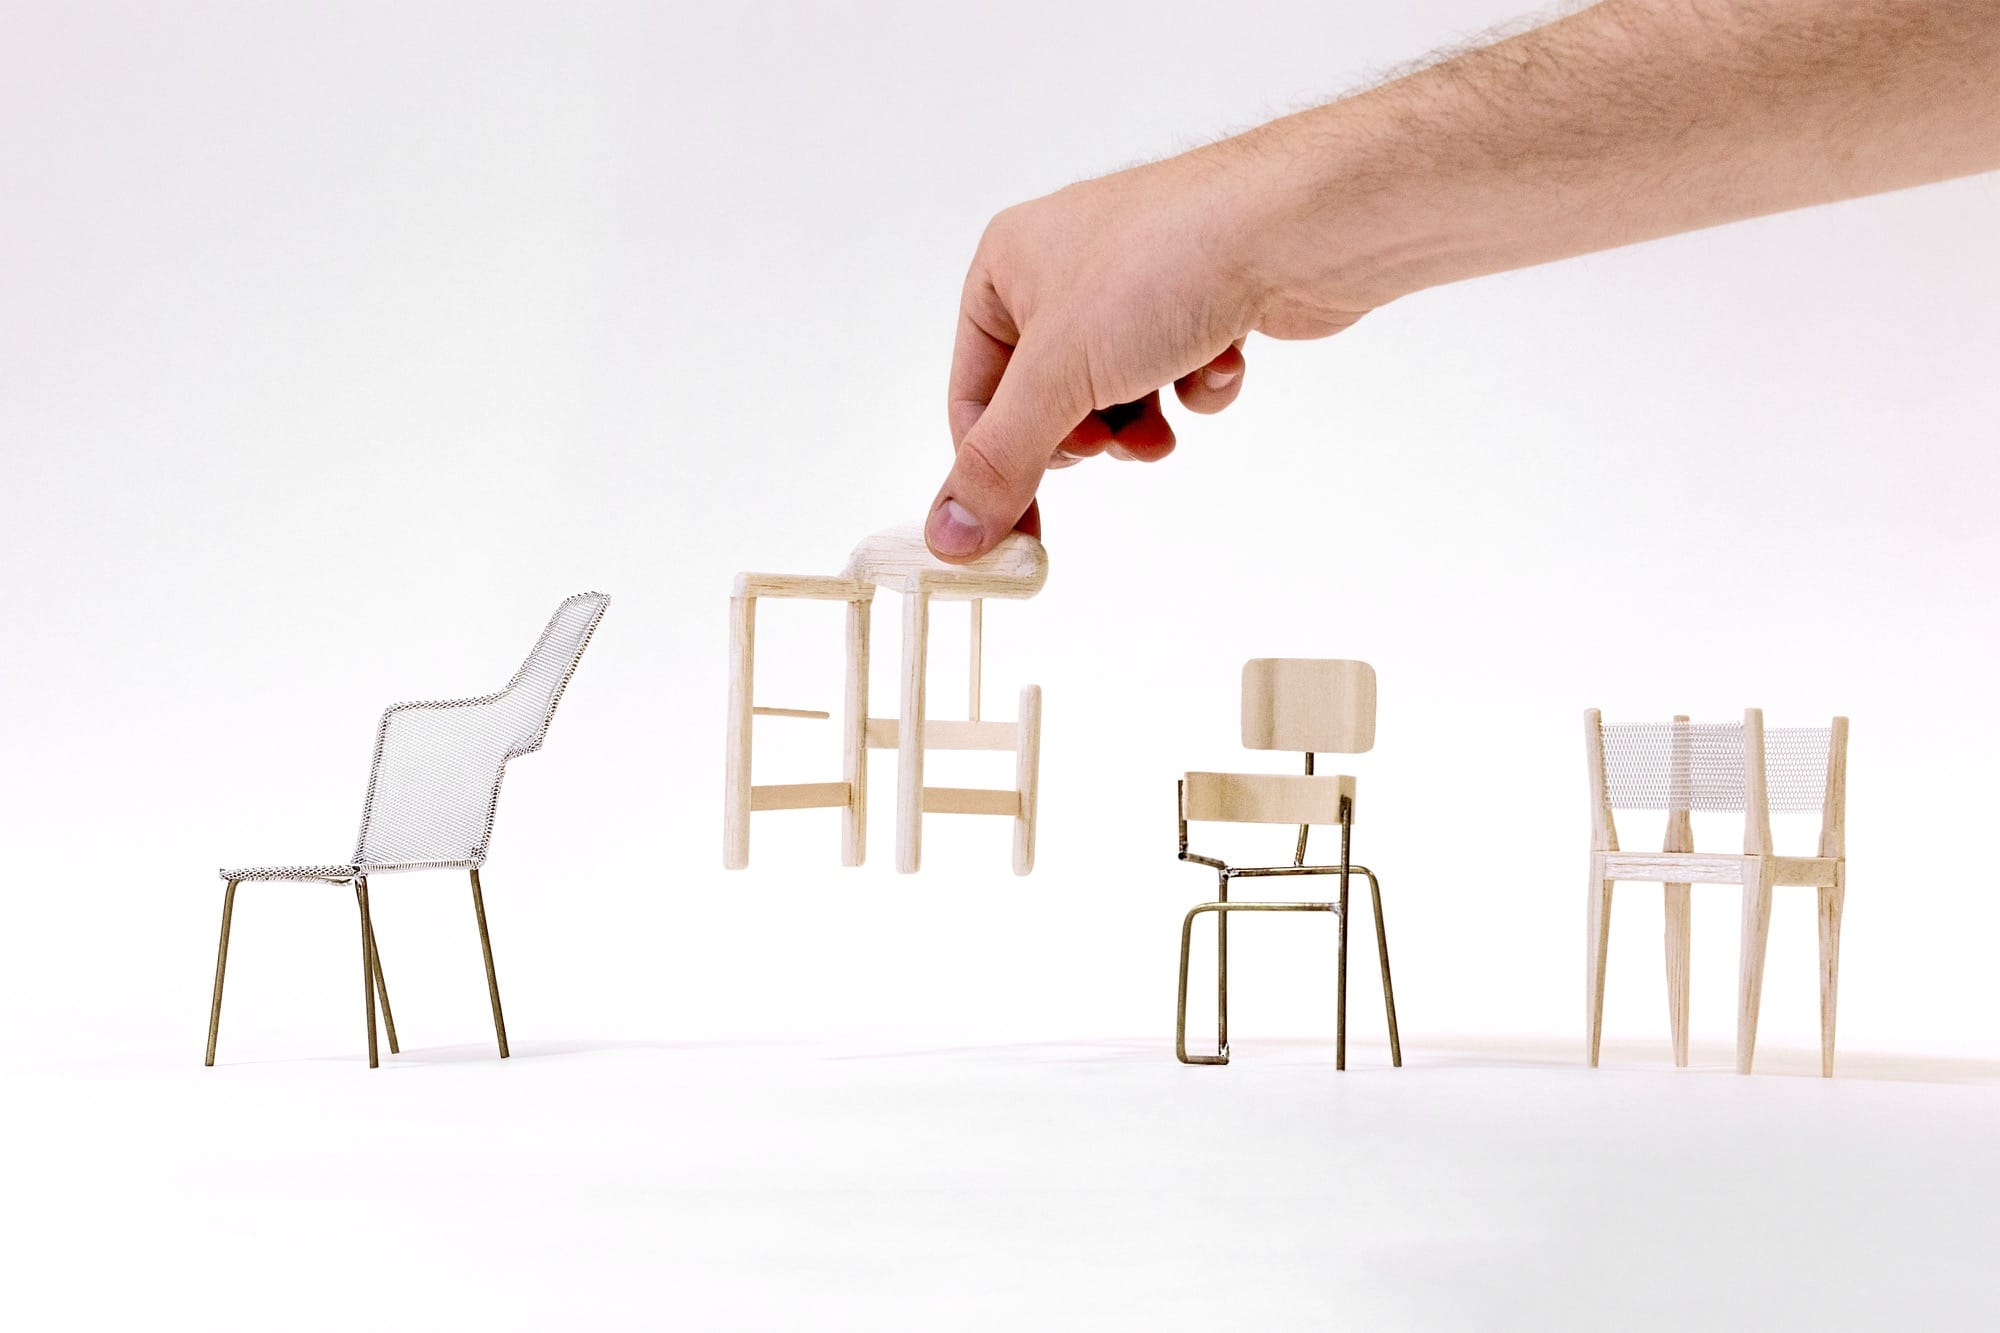 The ... & The chAIr Project u2013 Reversing the role of human and machine in the ...